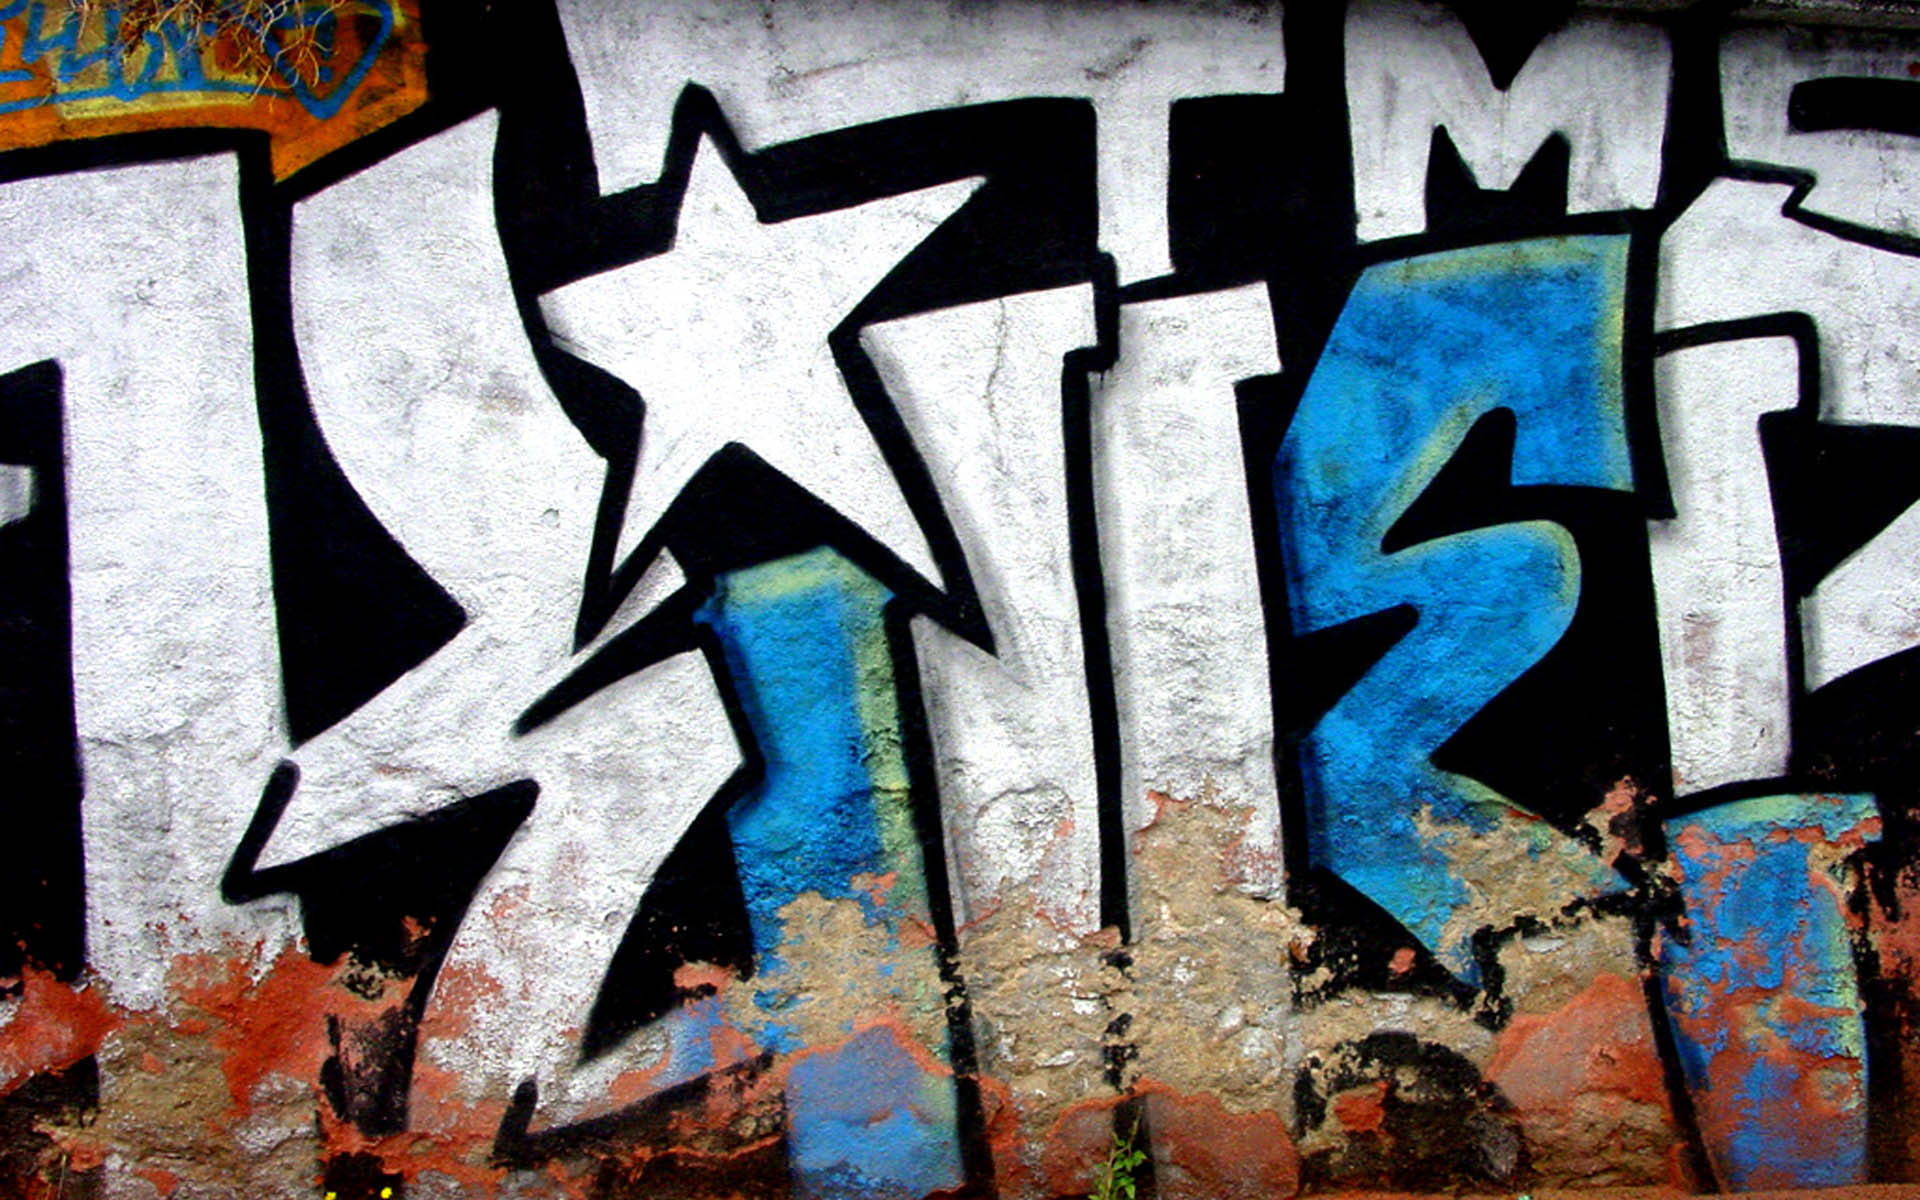 43] Graffiti Wallpapers for Desktop on WallpaperSafari 1920x1200